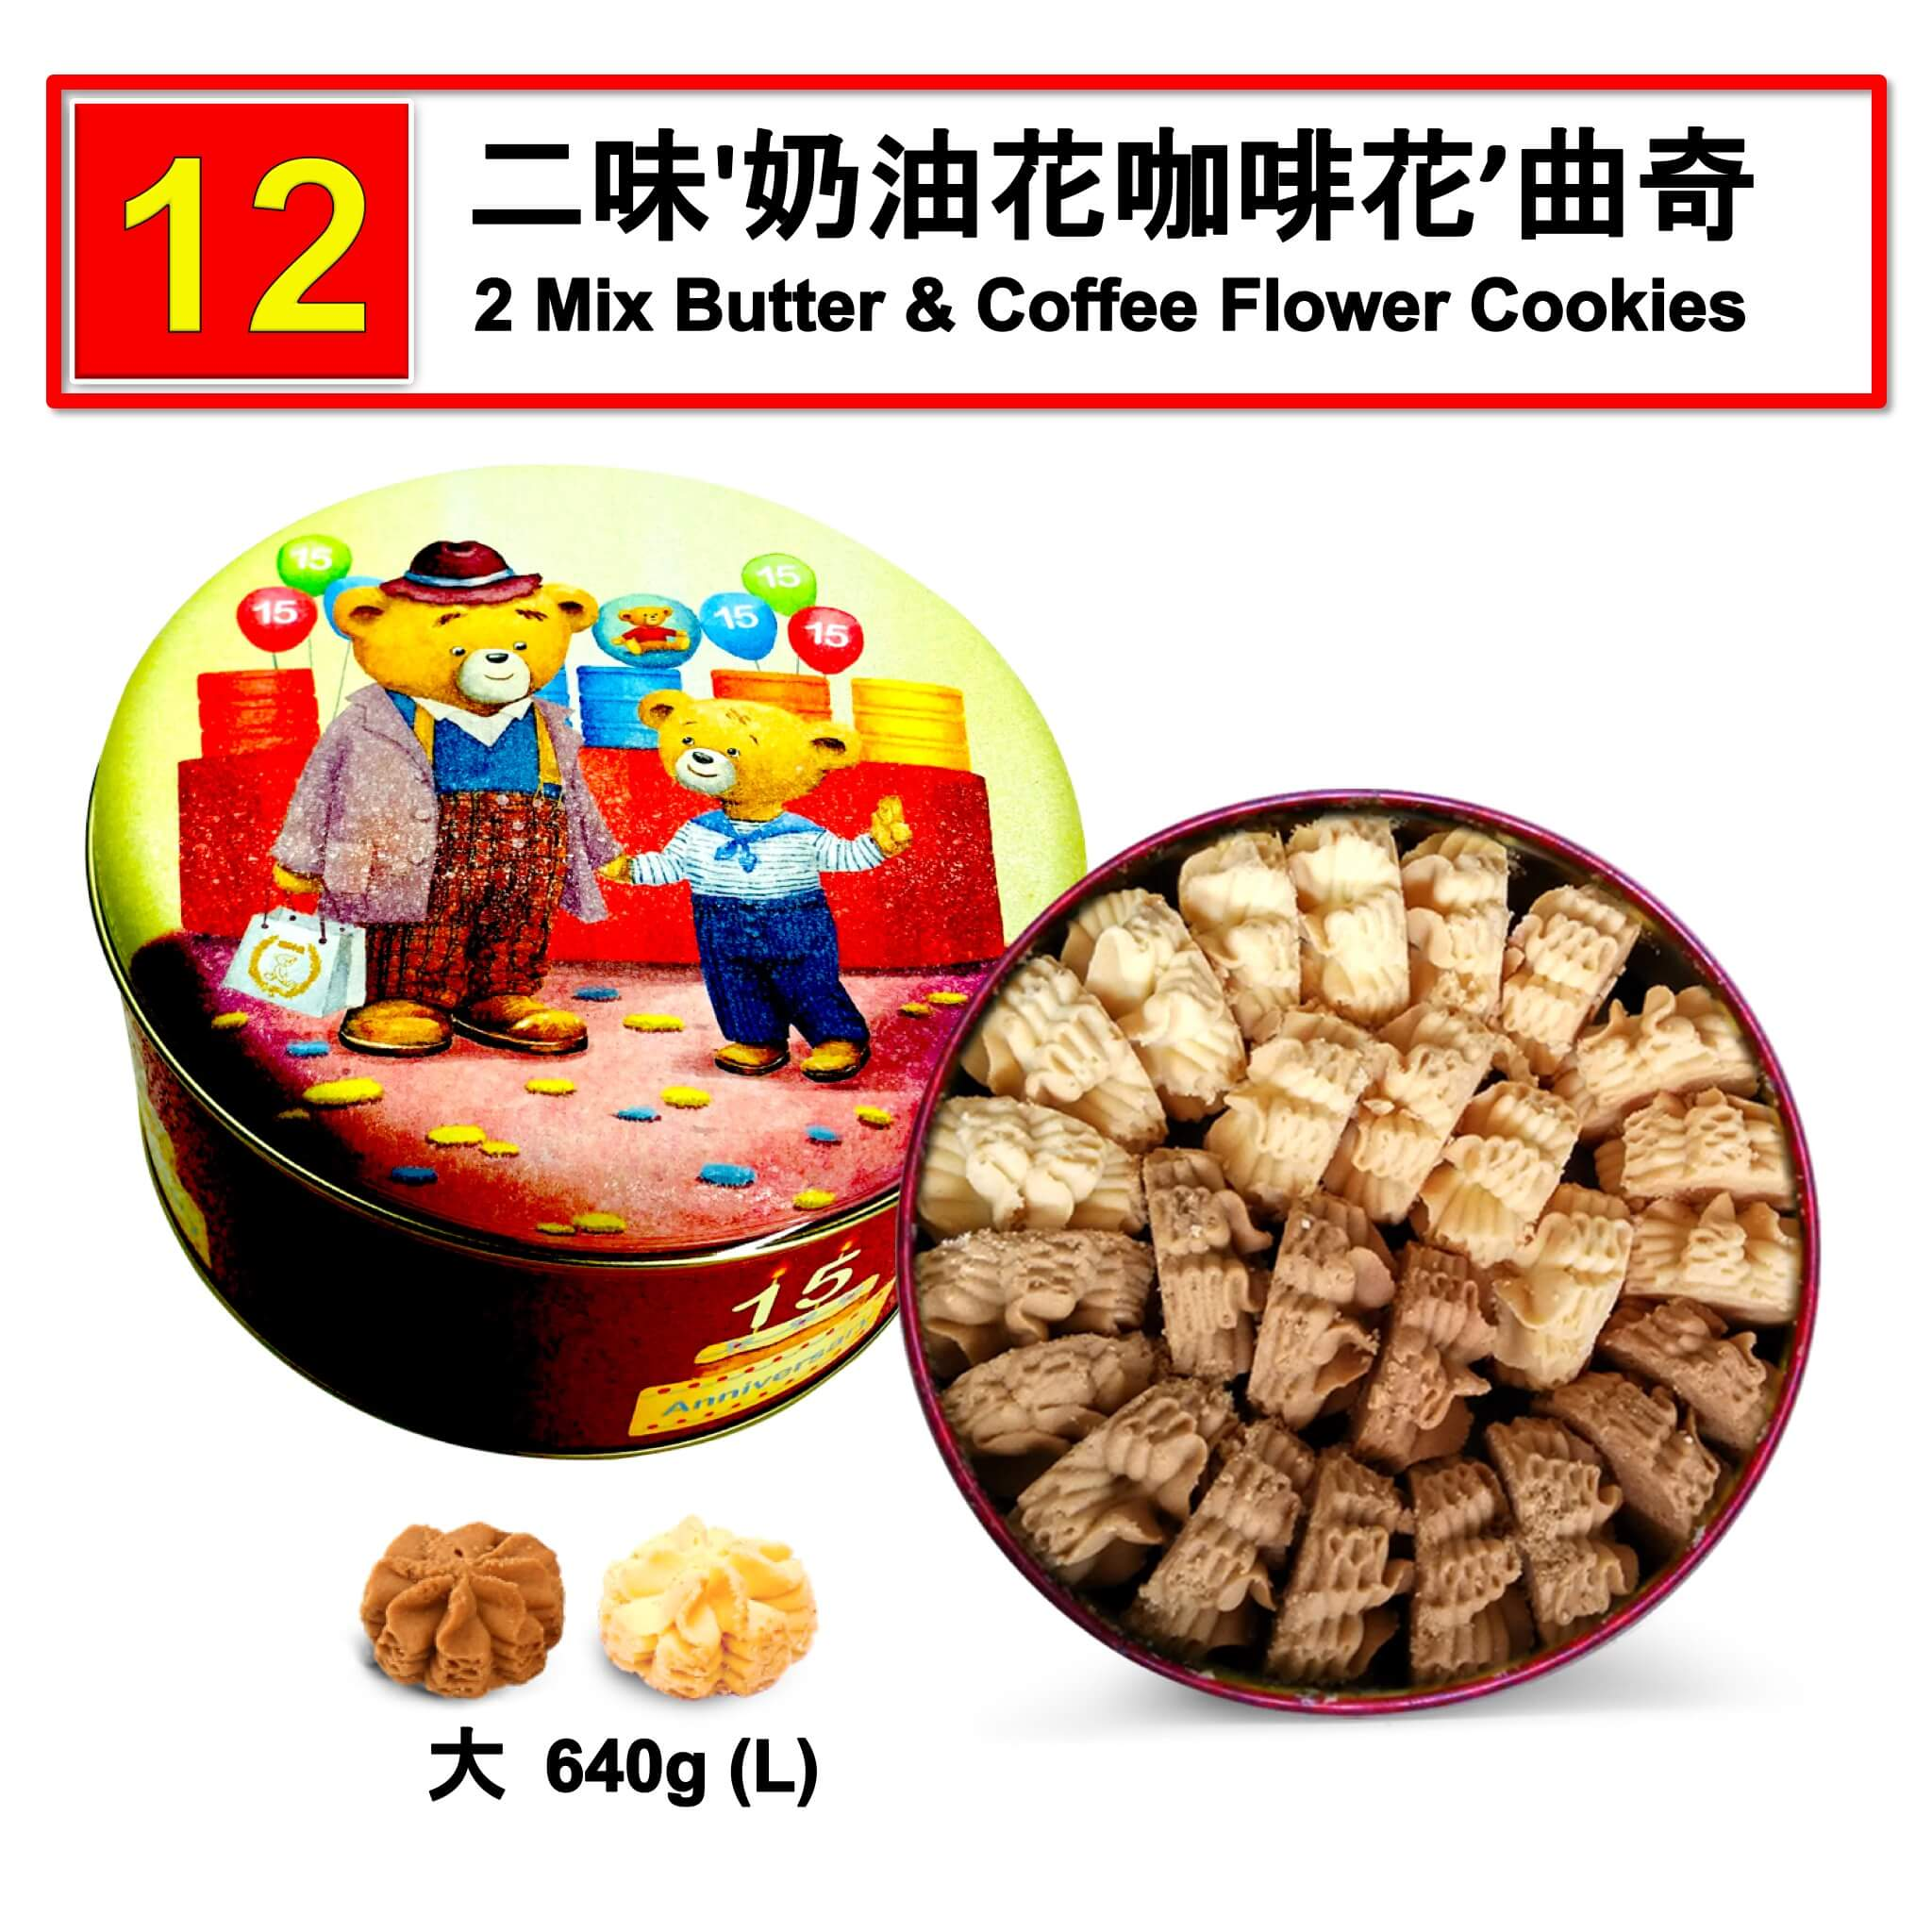 2 Mix Butter Cookies 640g (L)